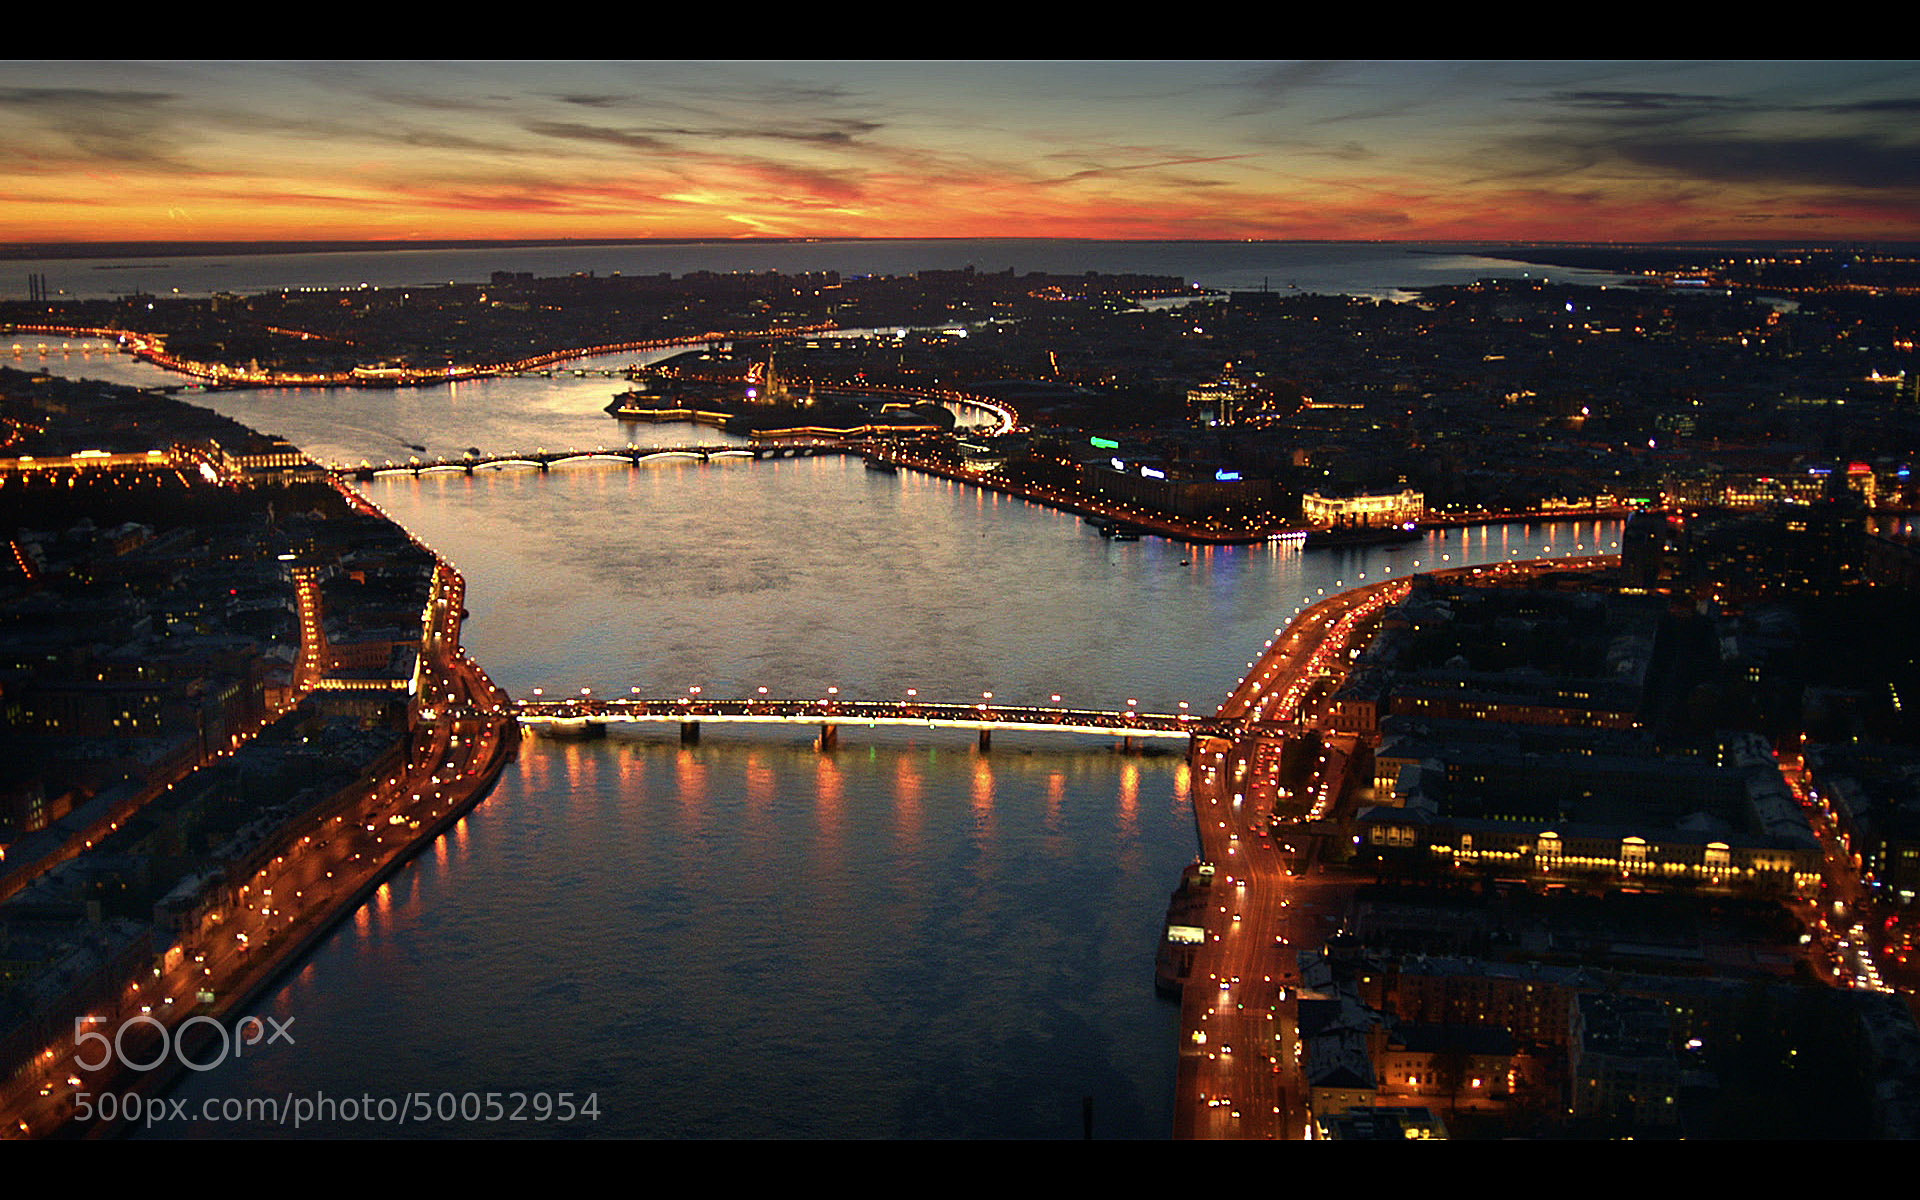 Photograph Saint Petersburg by alex chernavskiy on 500px